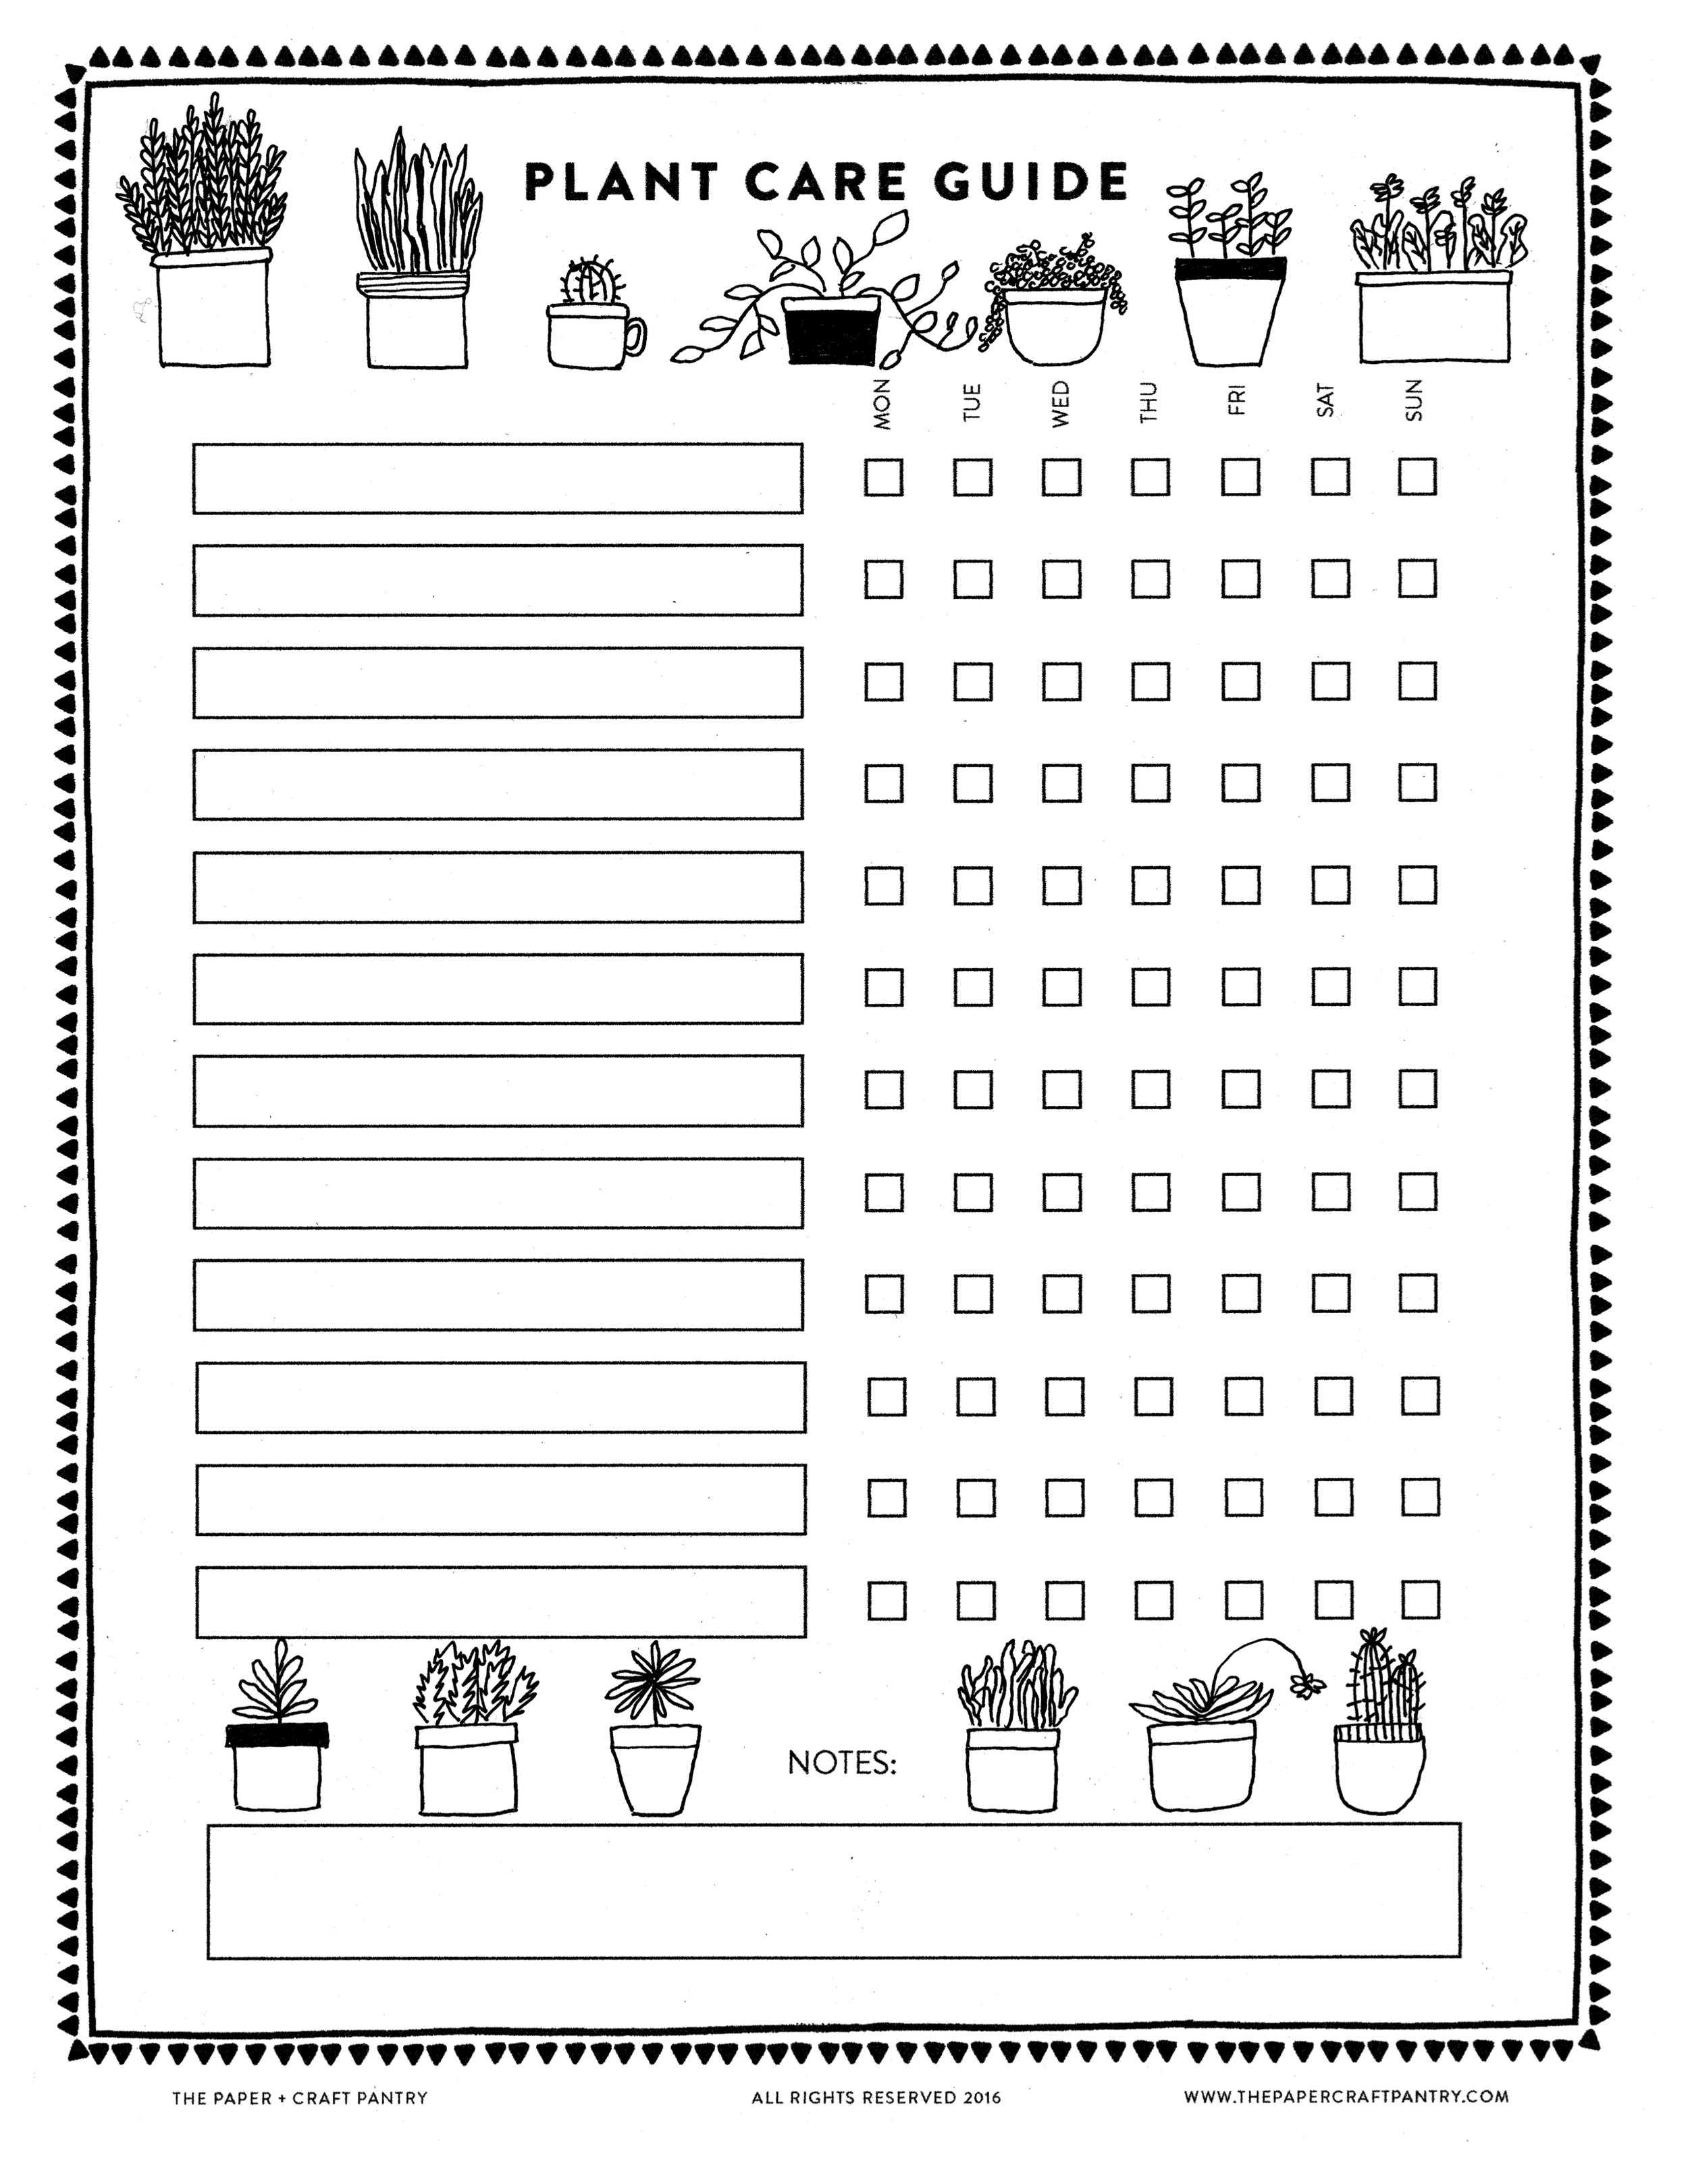 Download Our Printable Plant Care Guide + Watering Schedule for Your House Plants